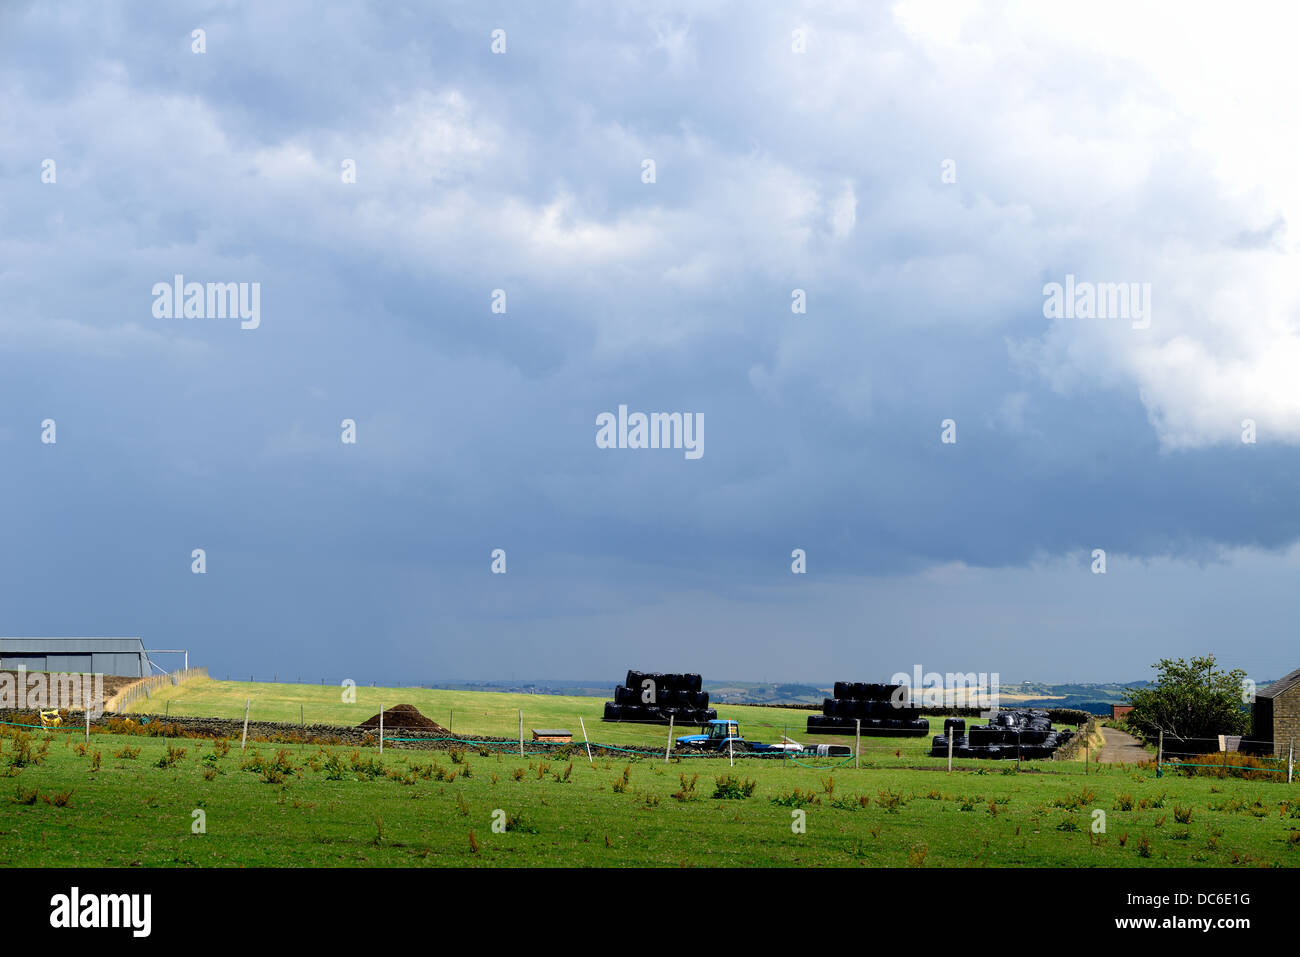 A landscape scene of a farm making bails of hay - Stock Image